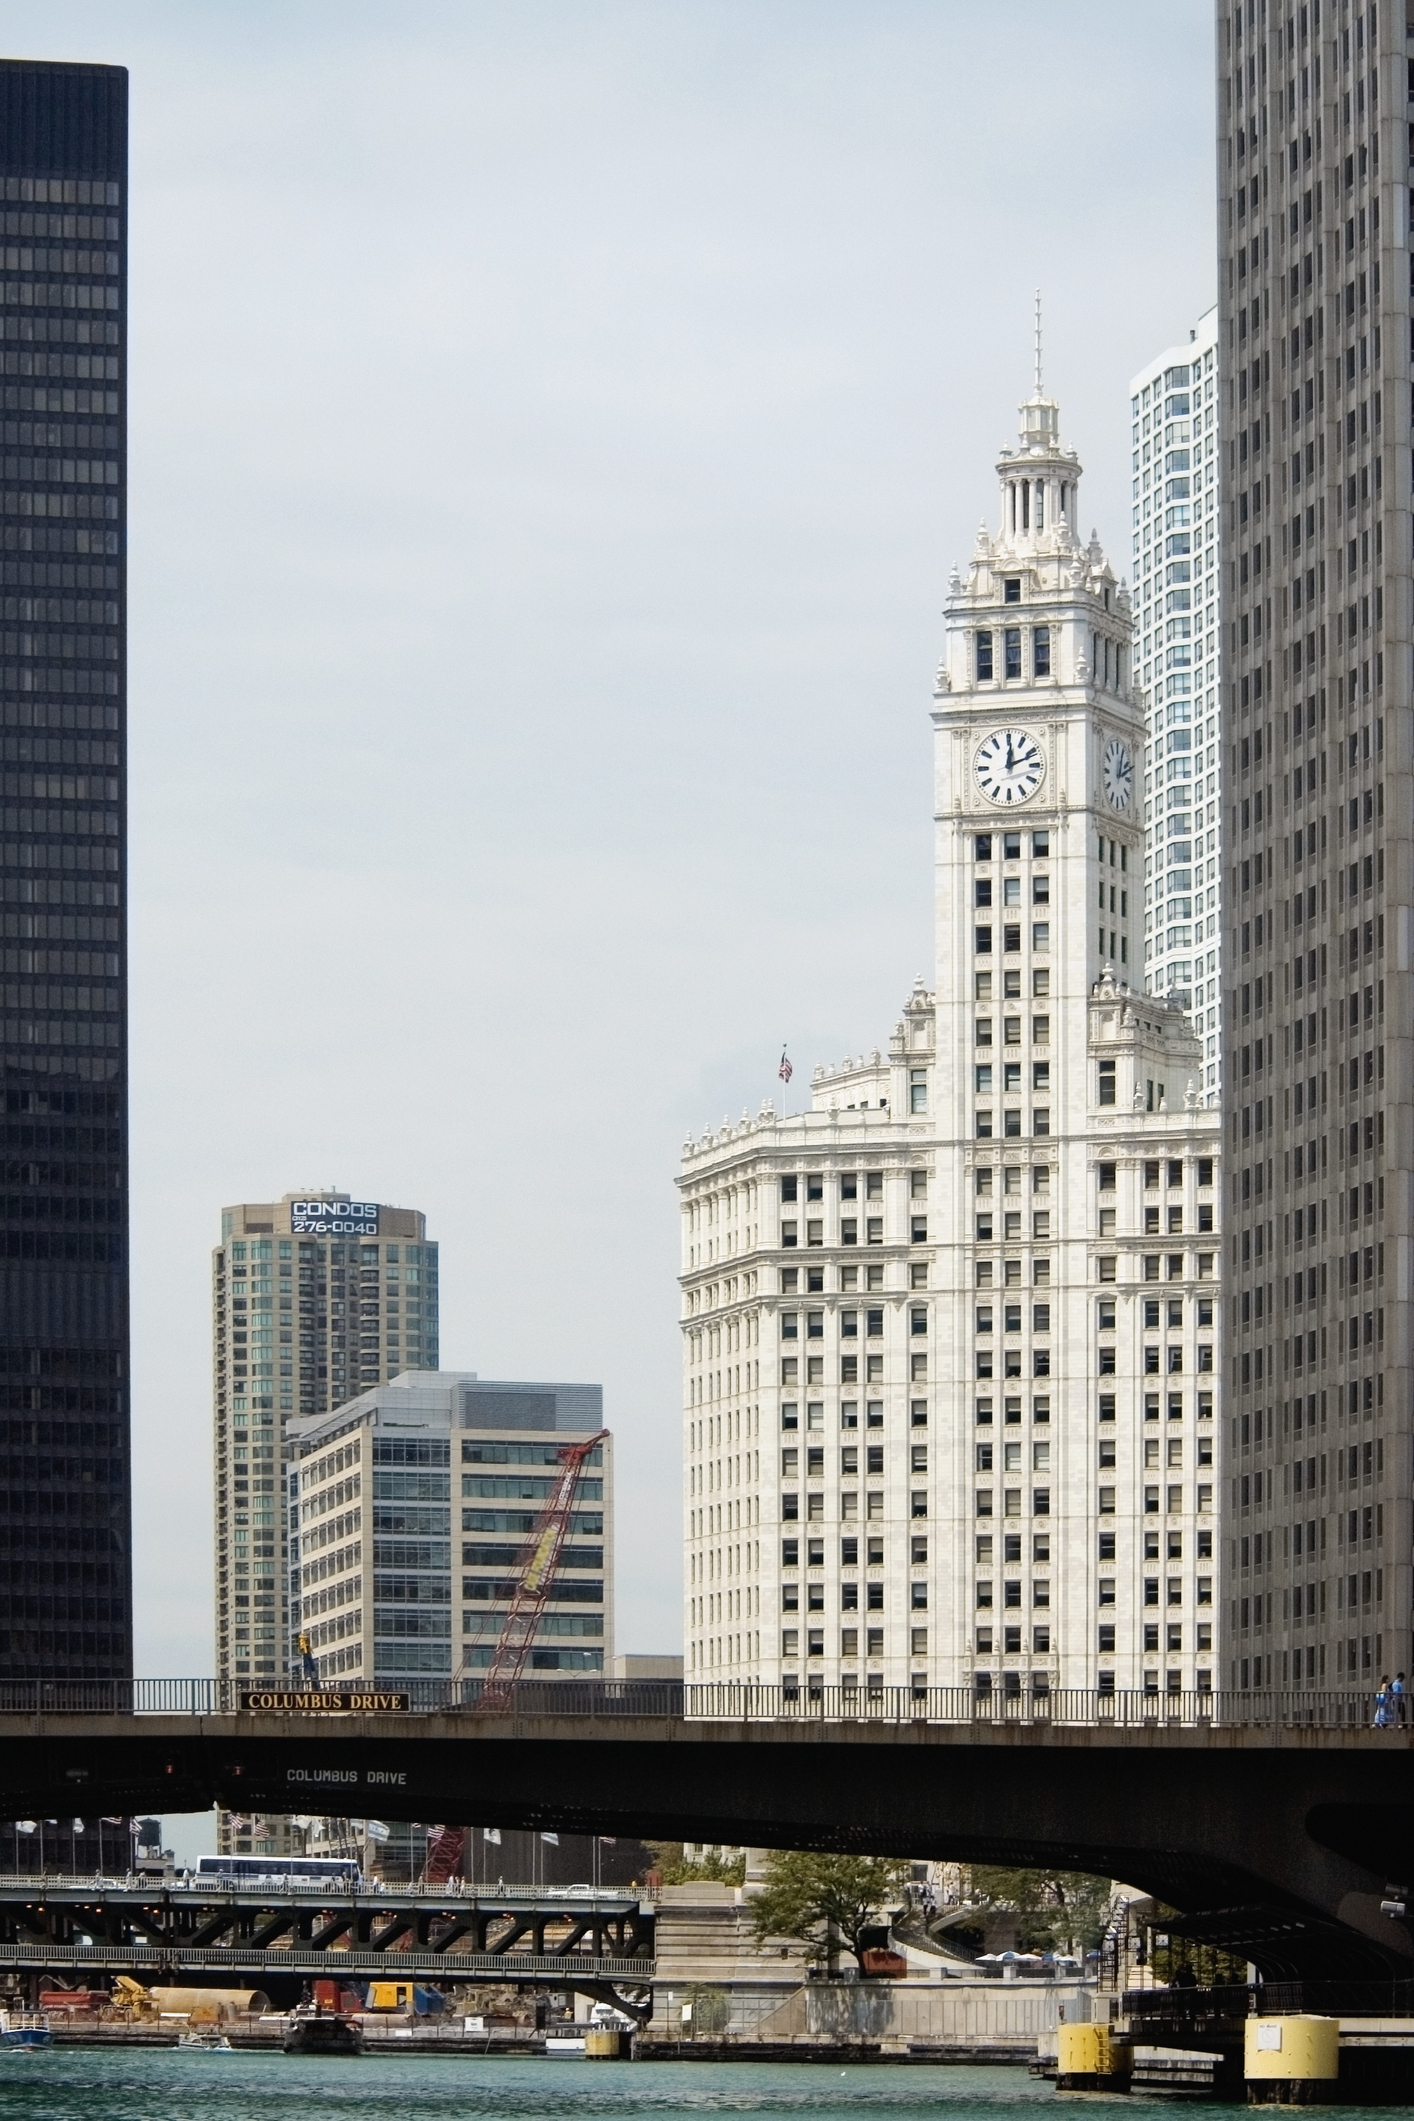 low-angle-view-of-a-building-wrigley-building-chicago-river-chicago-illinois-usajpg